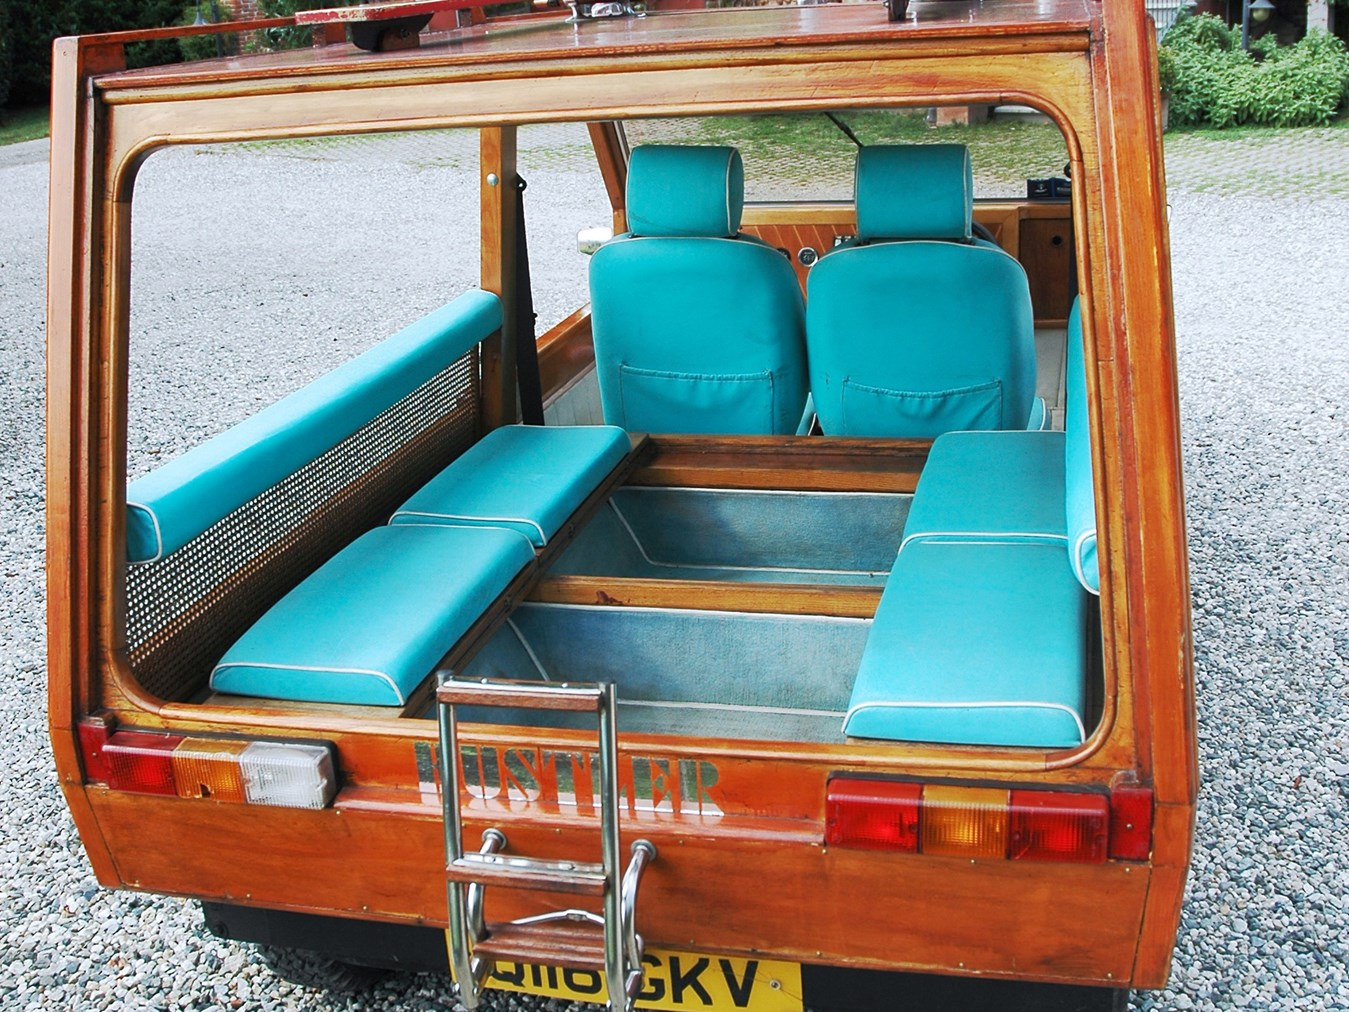 Rear seating is much like that on the vehicles we ride around on in places like Thailand.